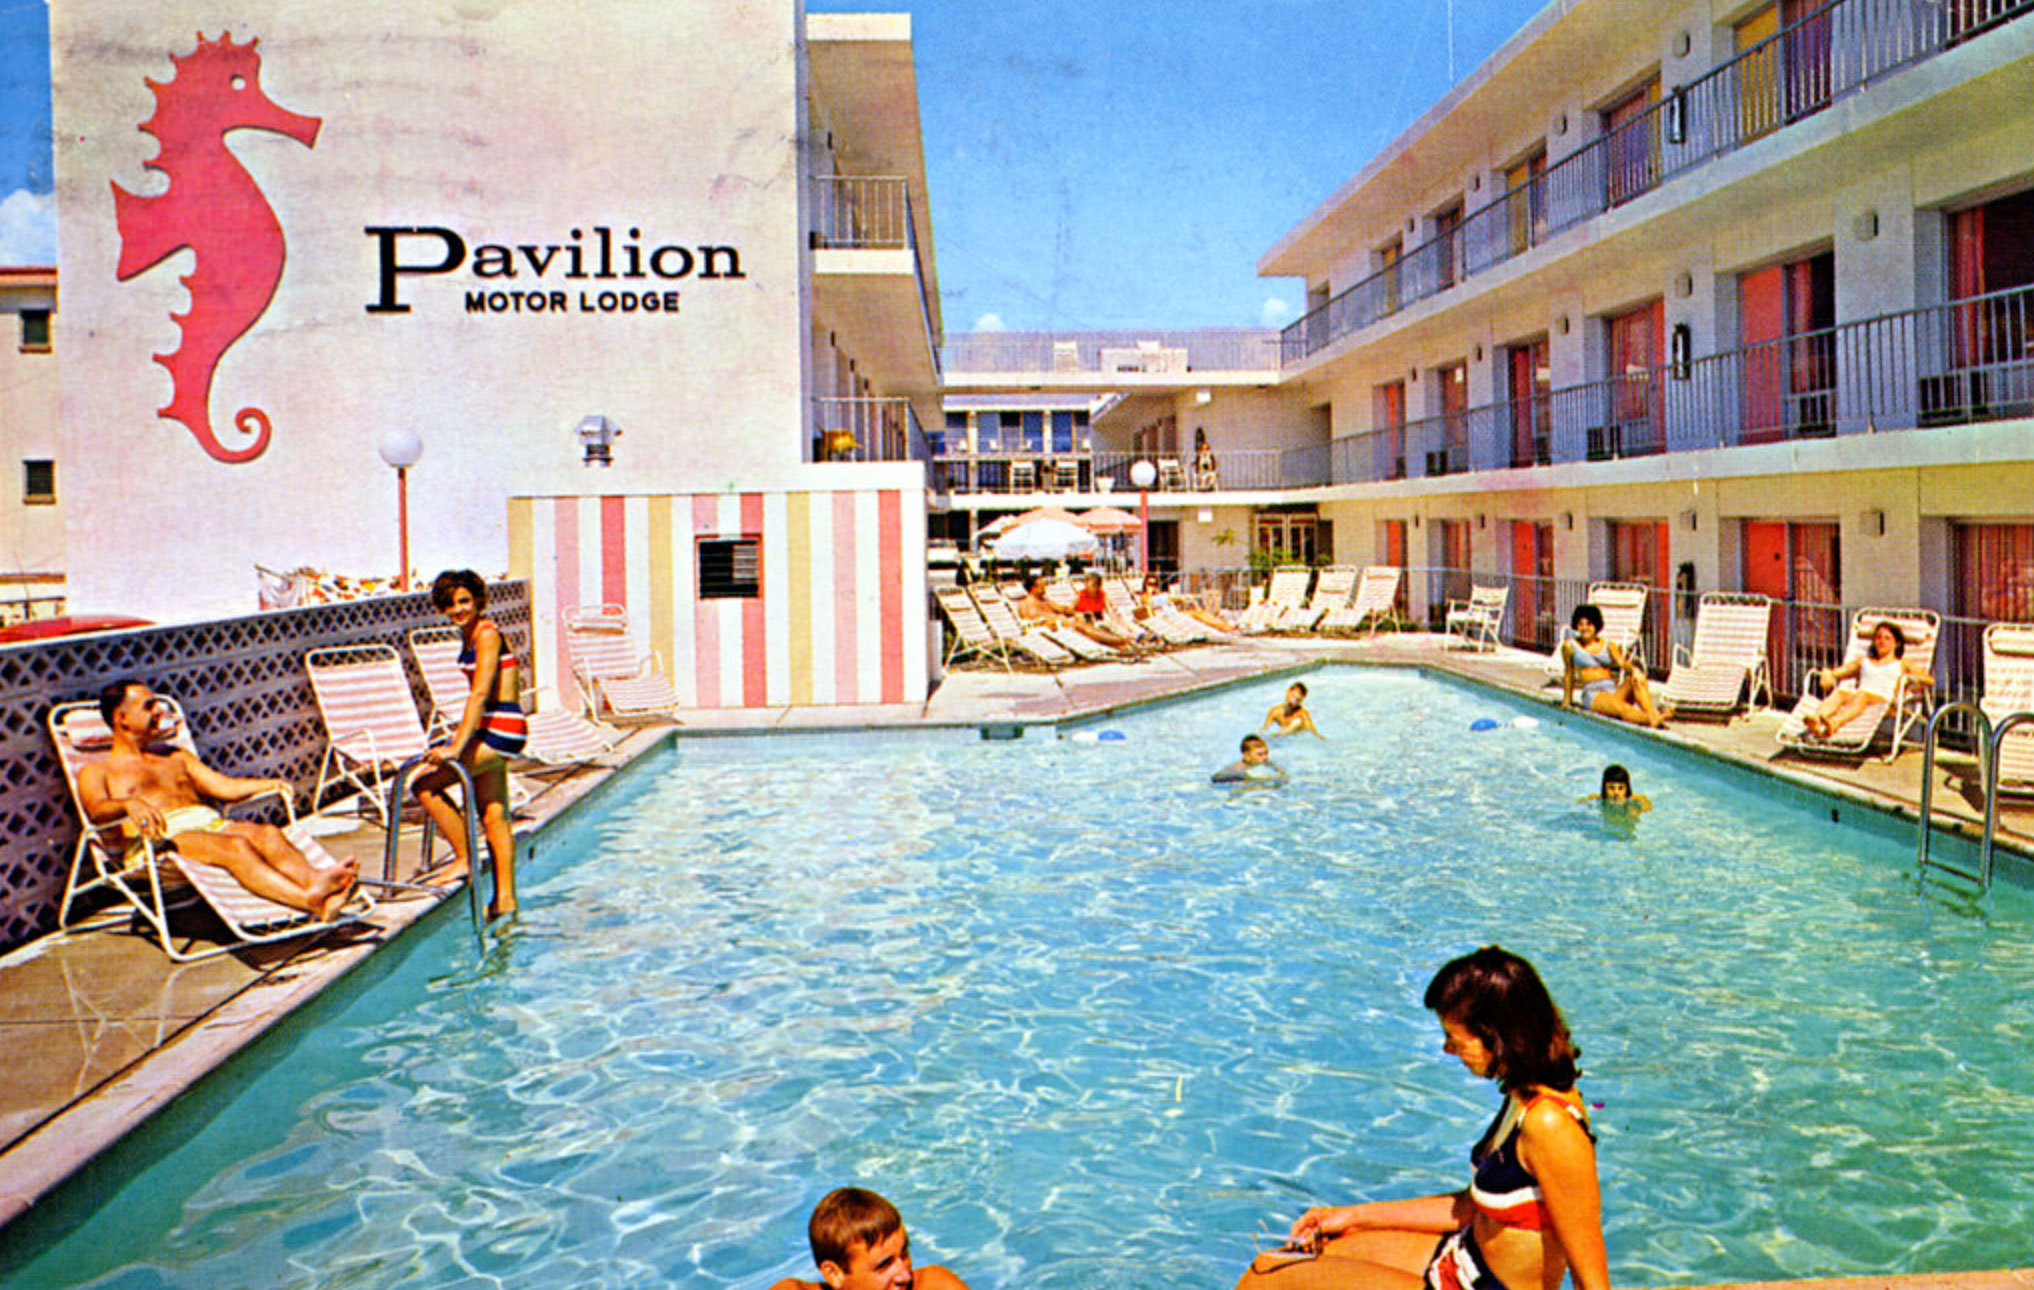 Pavillion Motor Lodge - OCNJ Where to Stay